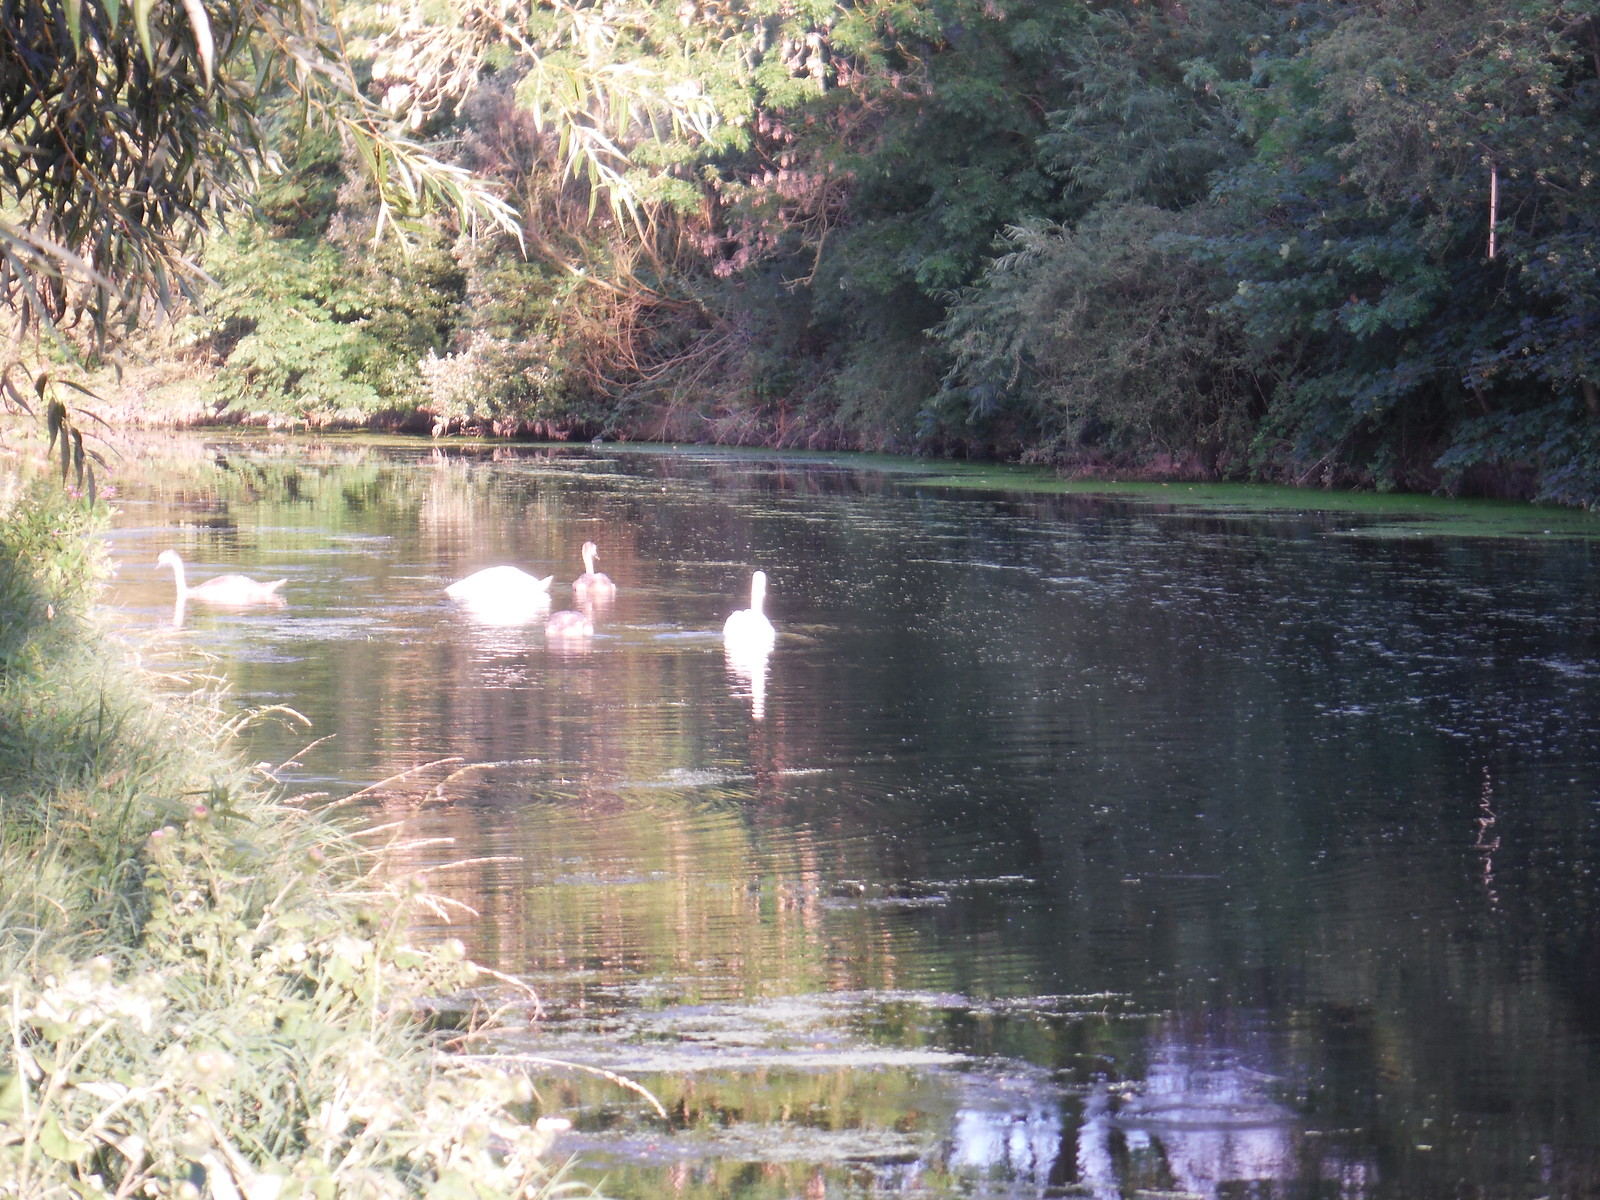 Swans and Cygnets on River Brent/Grand Union Canal SWC Short Walk 22 - Boston Manor to Osterley